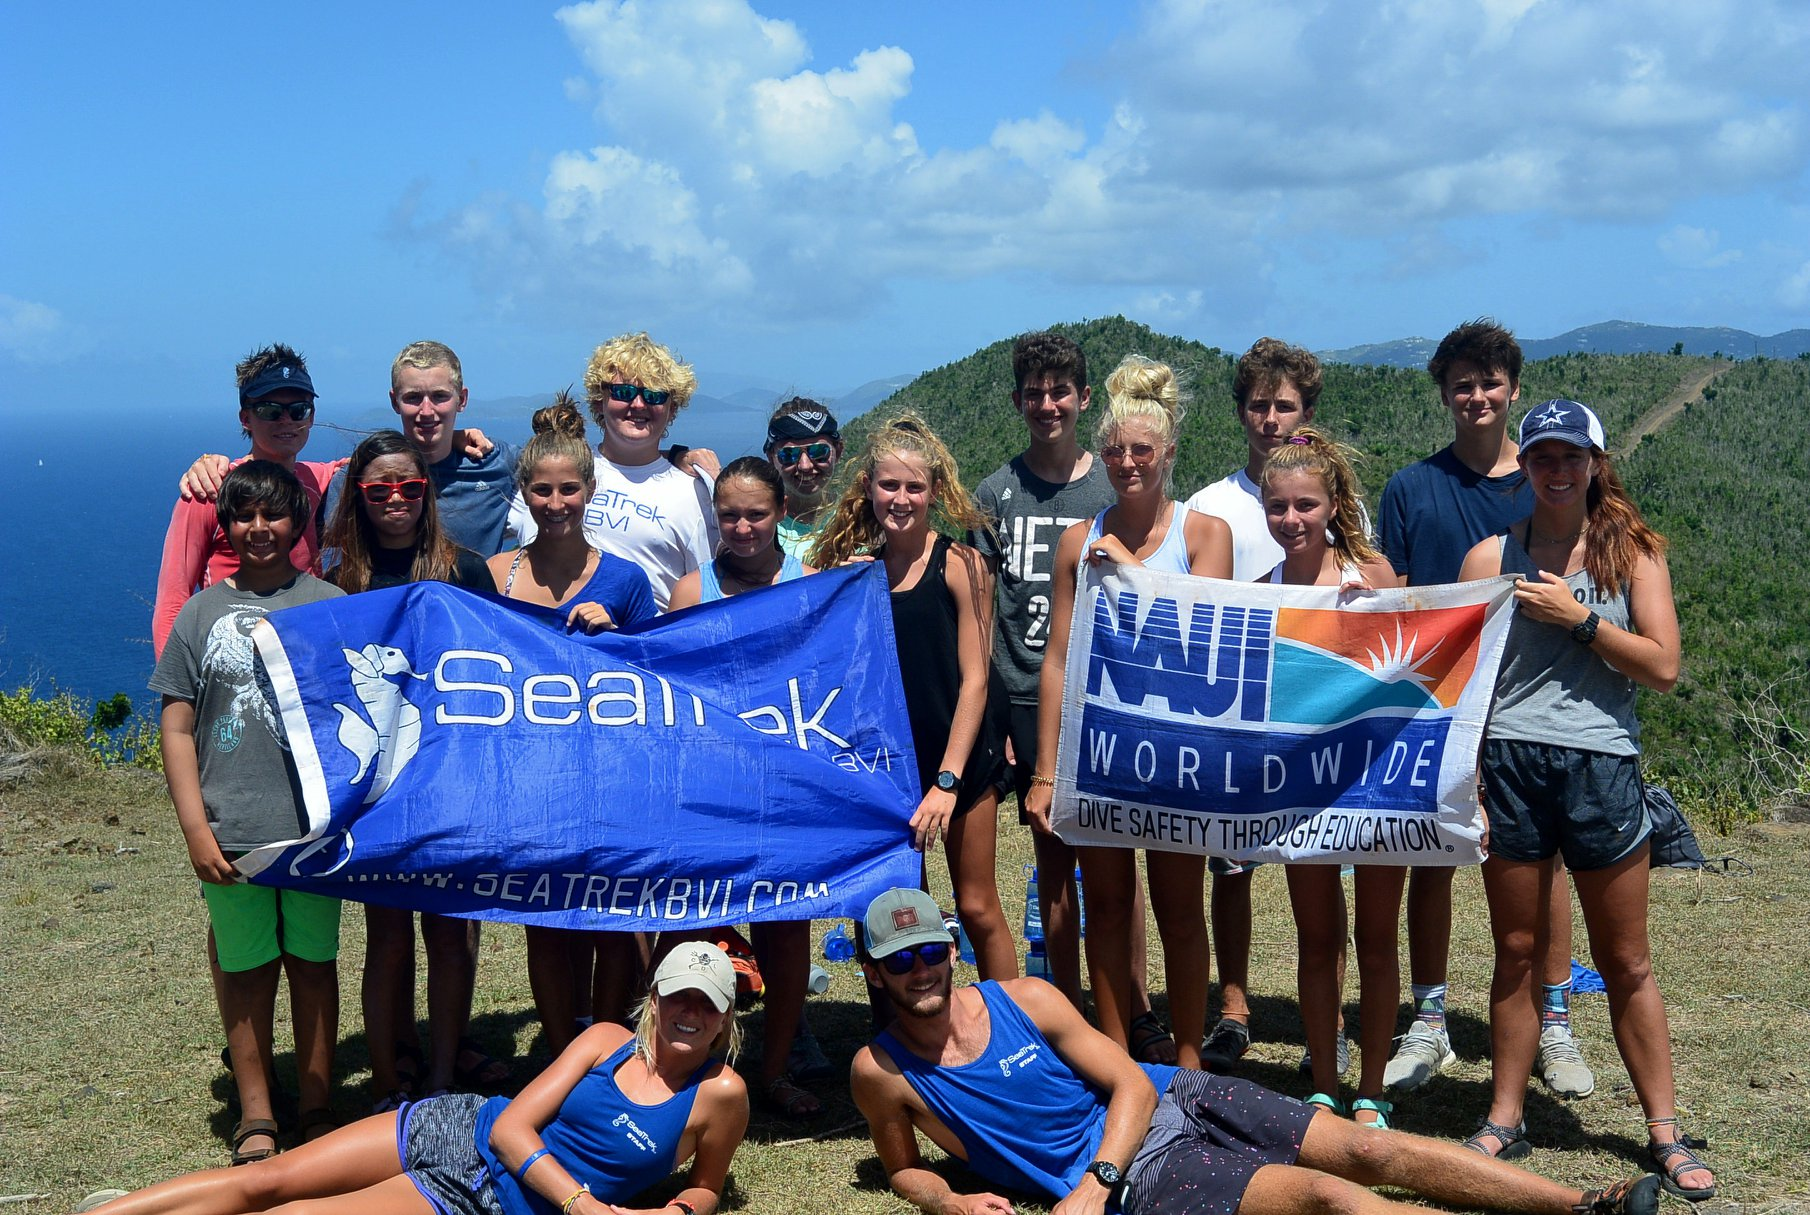 Summer Program - Water Sports | SeaTrek BVI: Tropical Adventures in Sailing, Scuba & Marine Biology